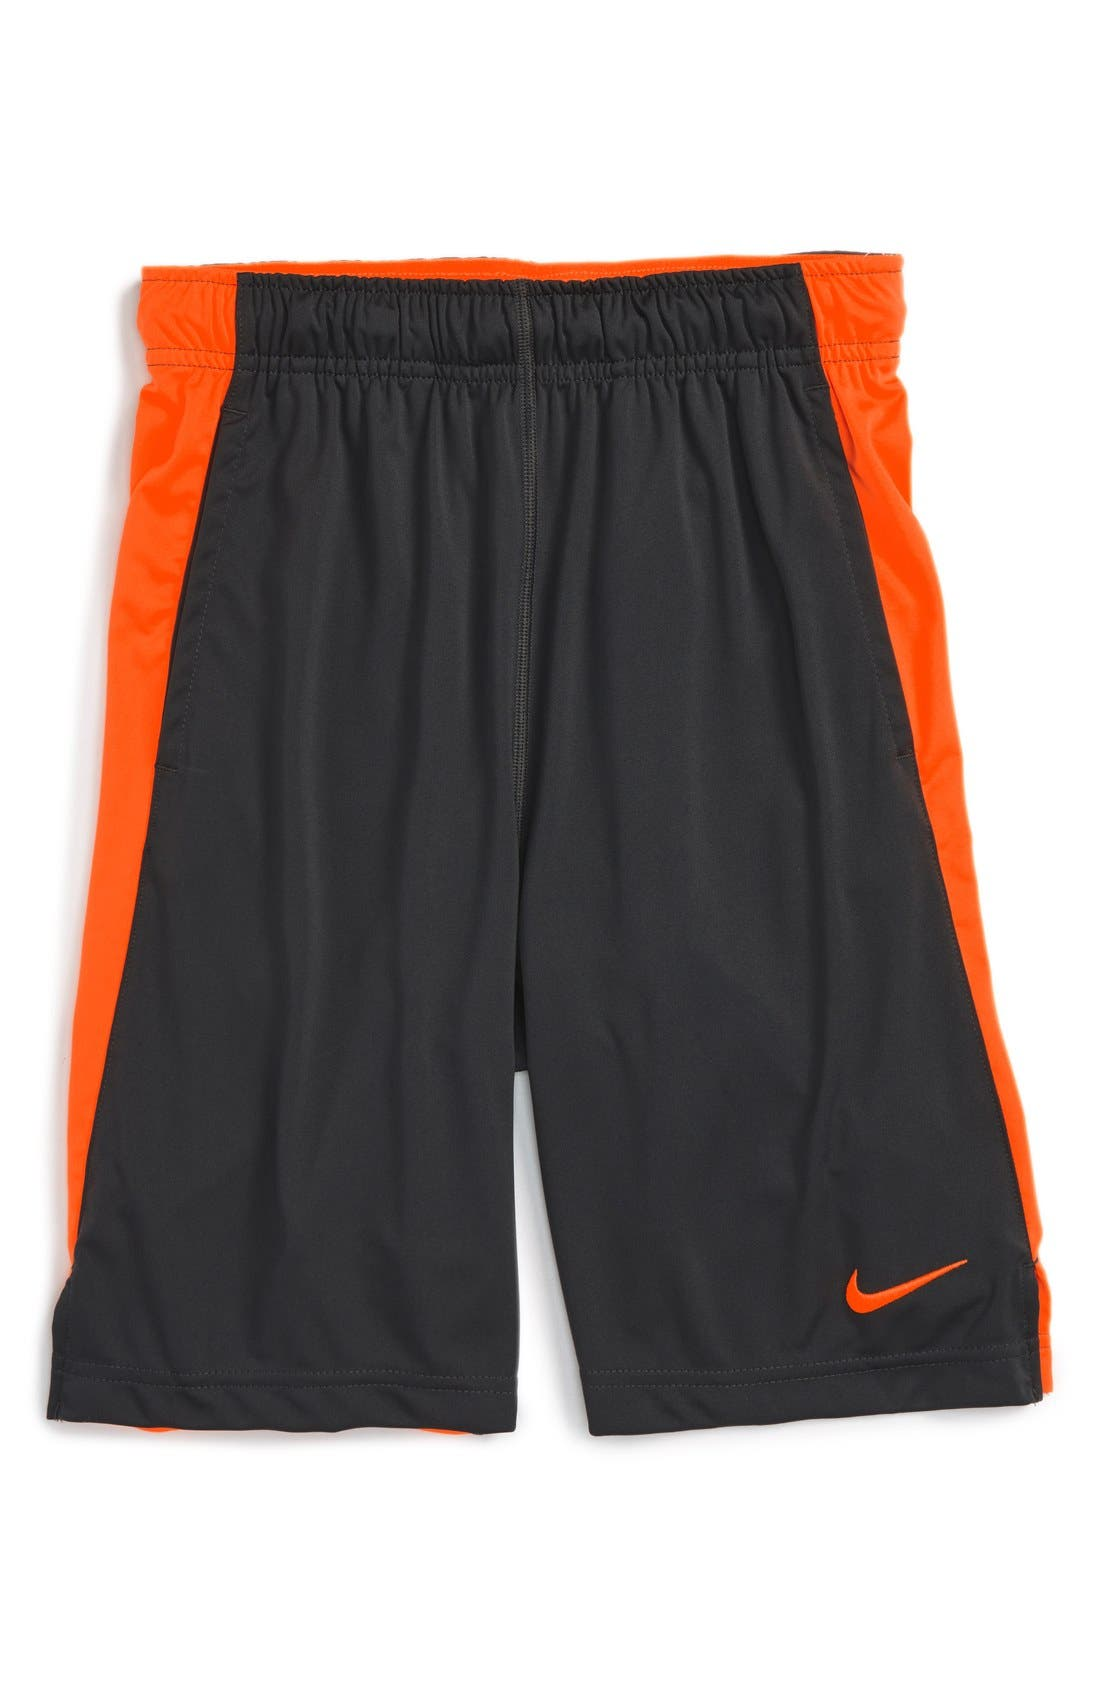 Main Image - Nike 'Fly' Dri-FIT Training Shorts (Little Boys & Big Boys)